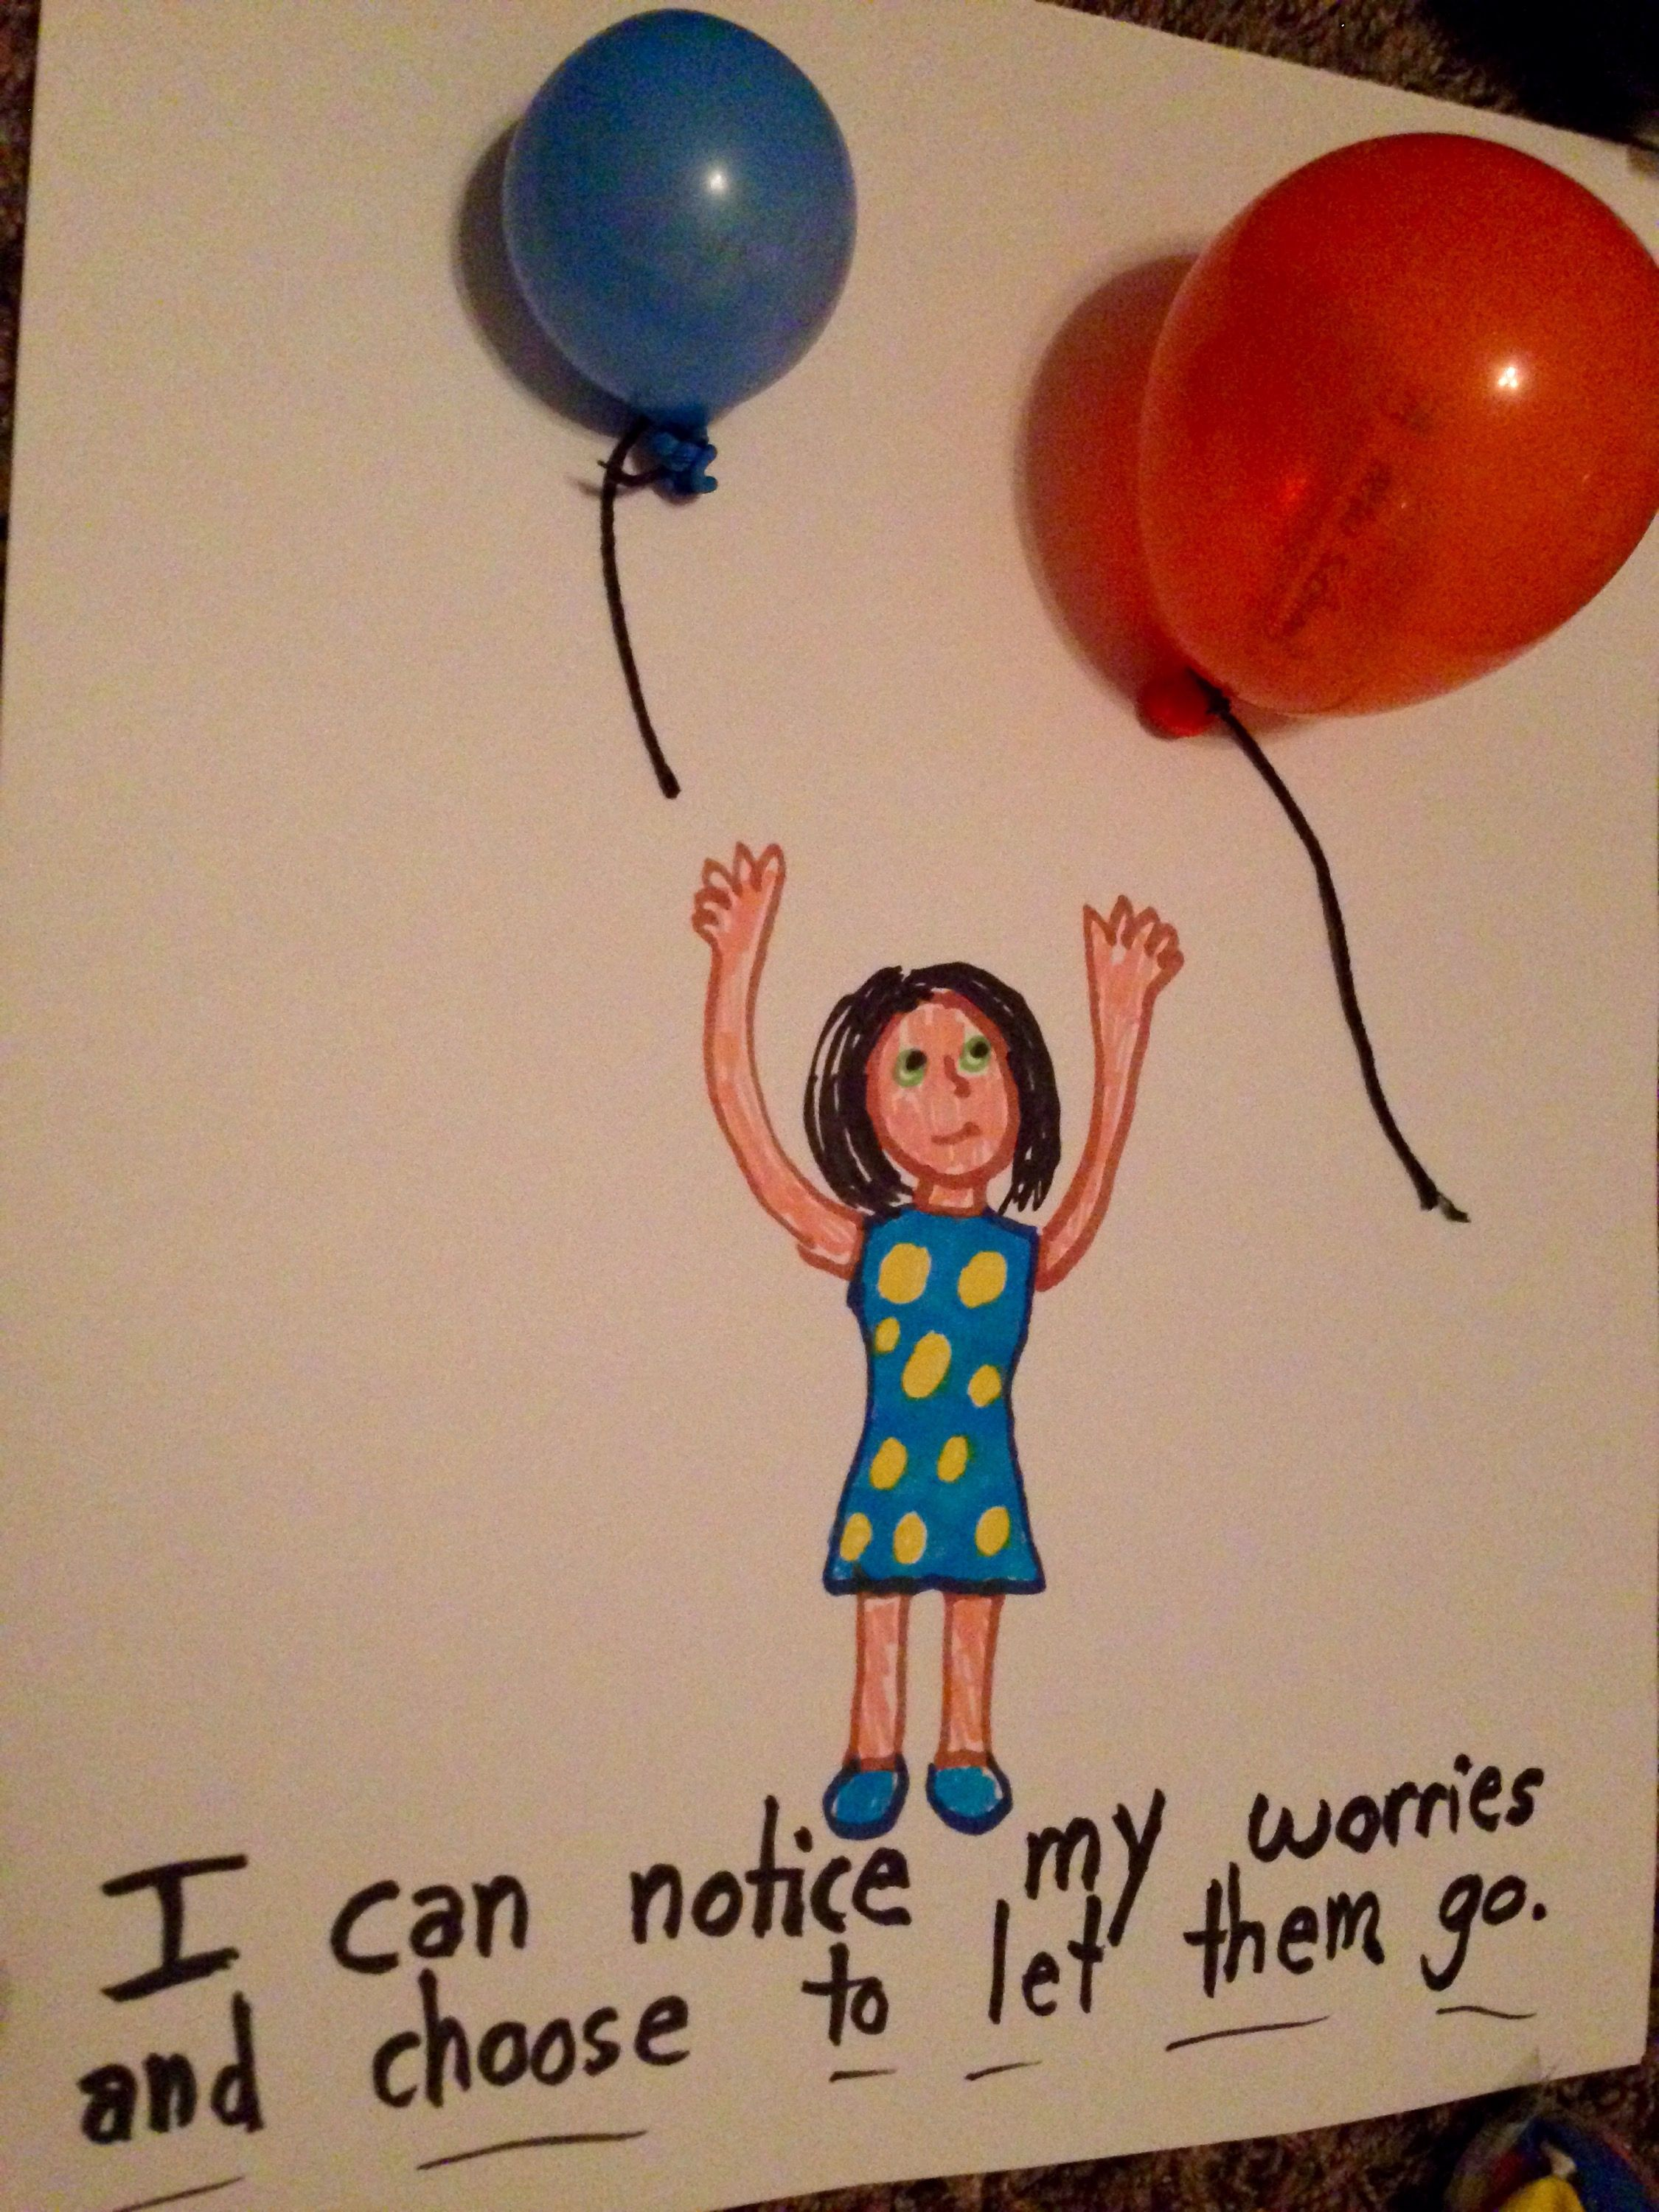 Worry Balloons Art Without Harmful Helium Balloons